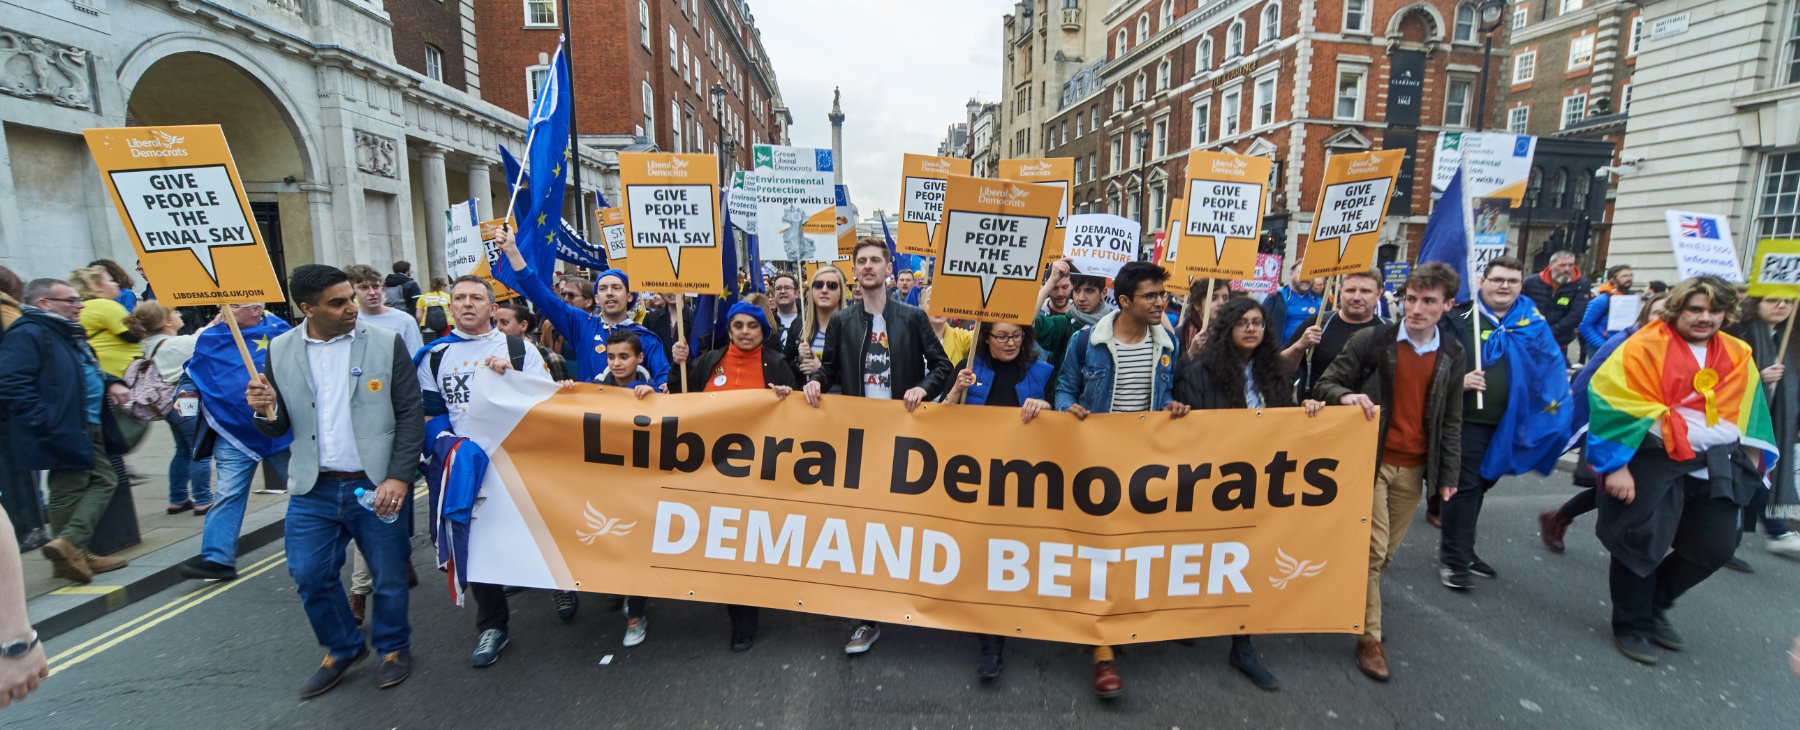 Liberal Democrats on the People's Vote March - Image: Liberal Democrats